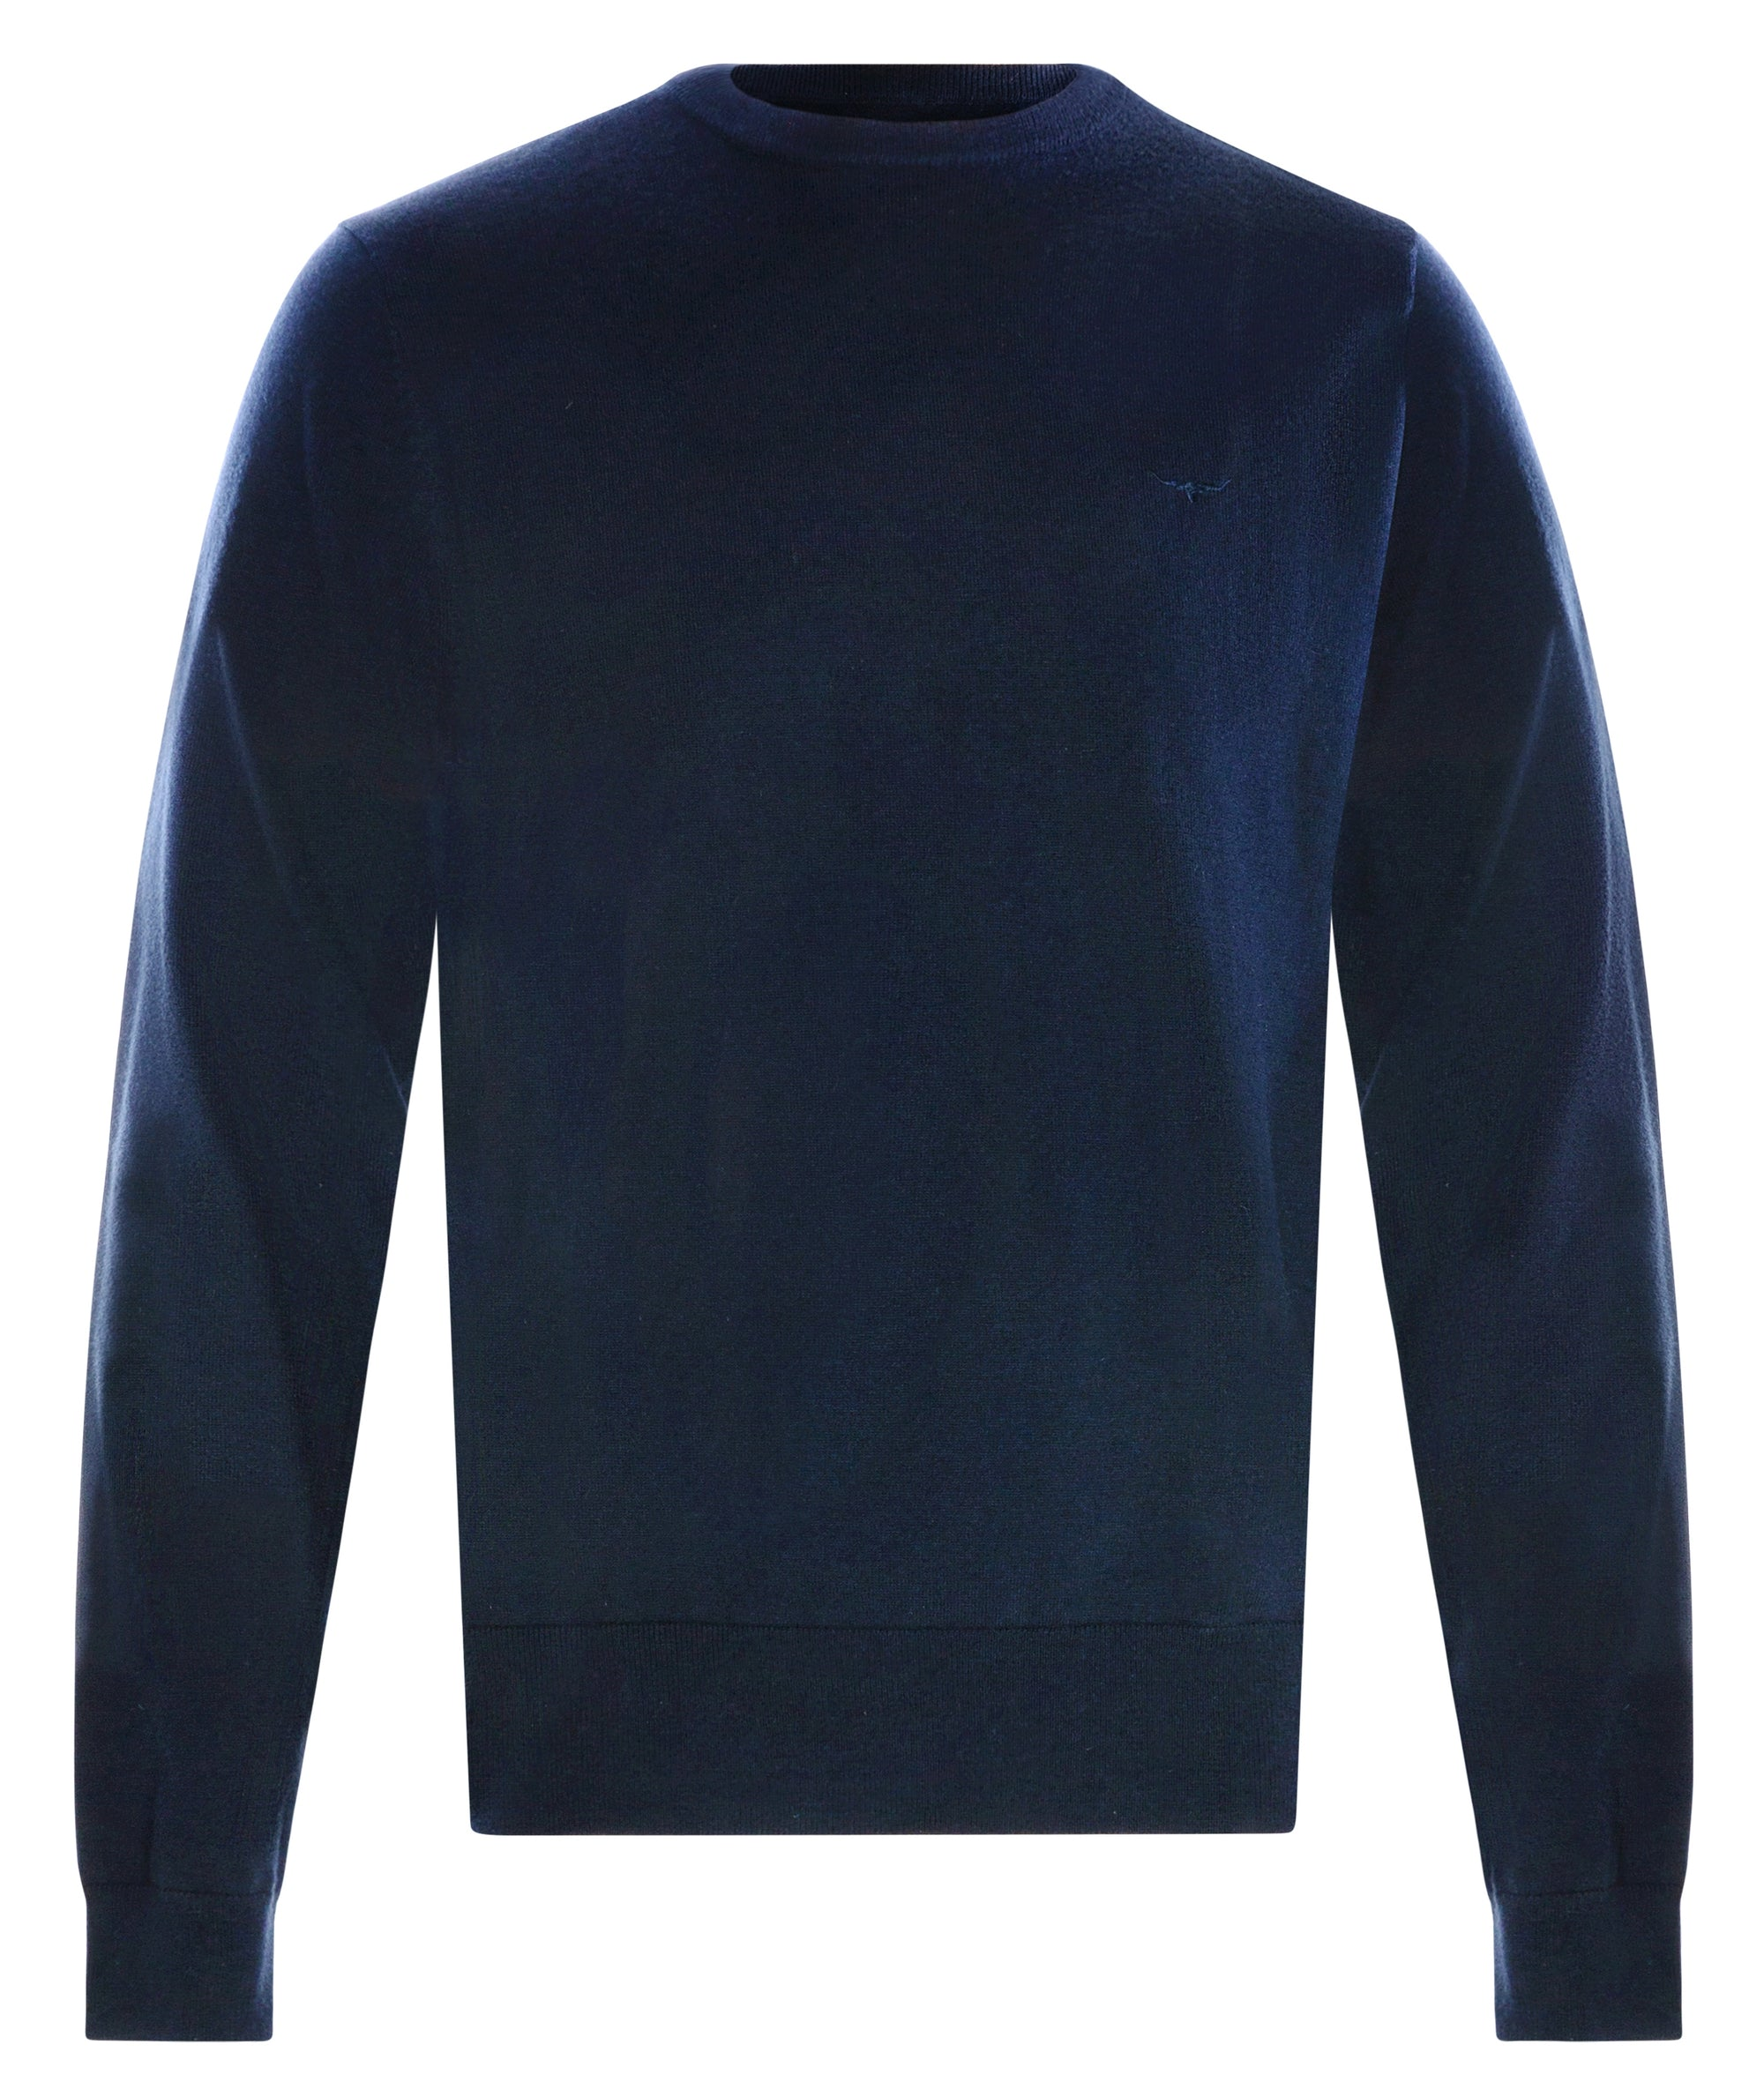 RM Williams Howe Sweater (4498969854089)